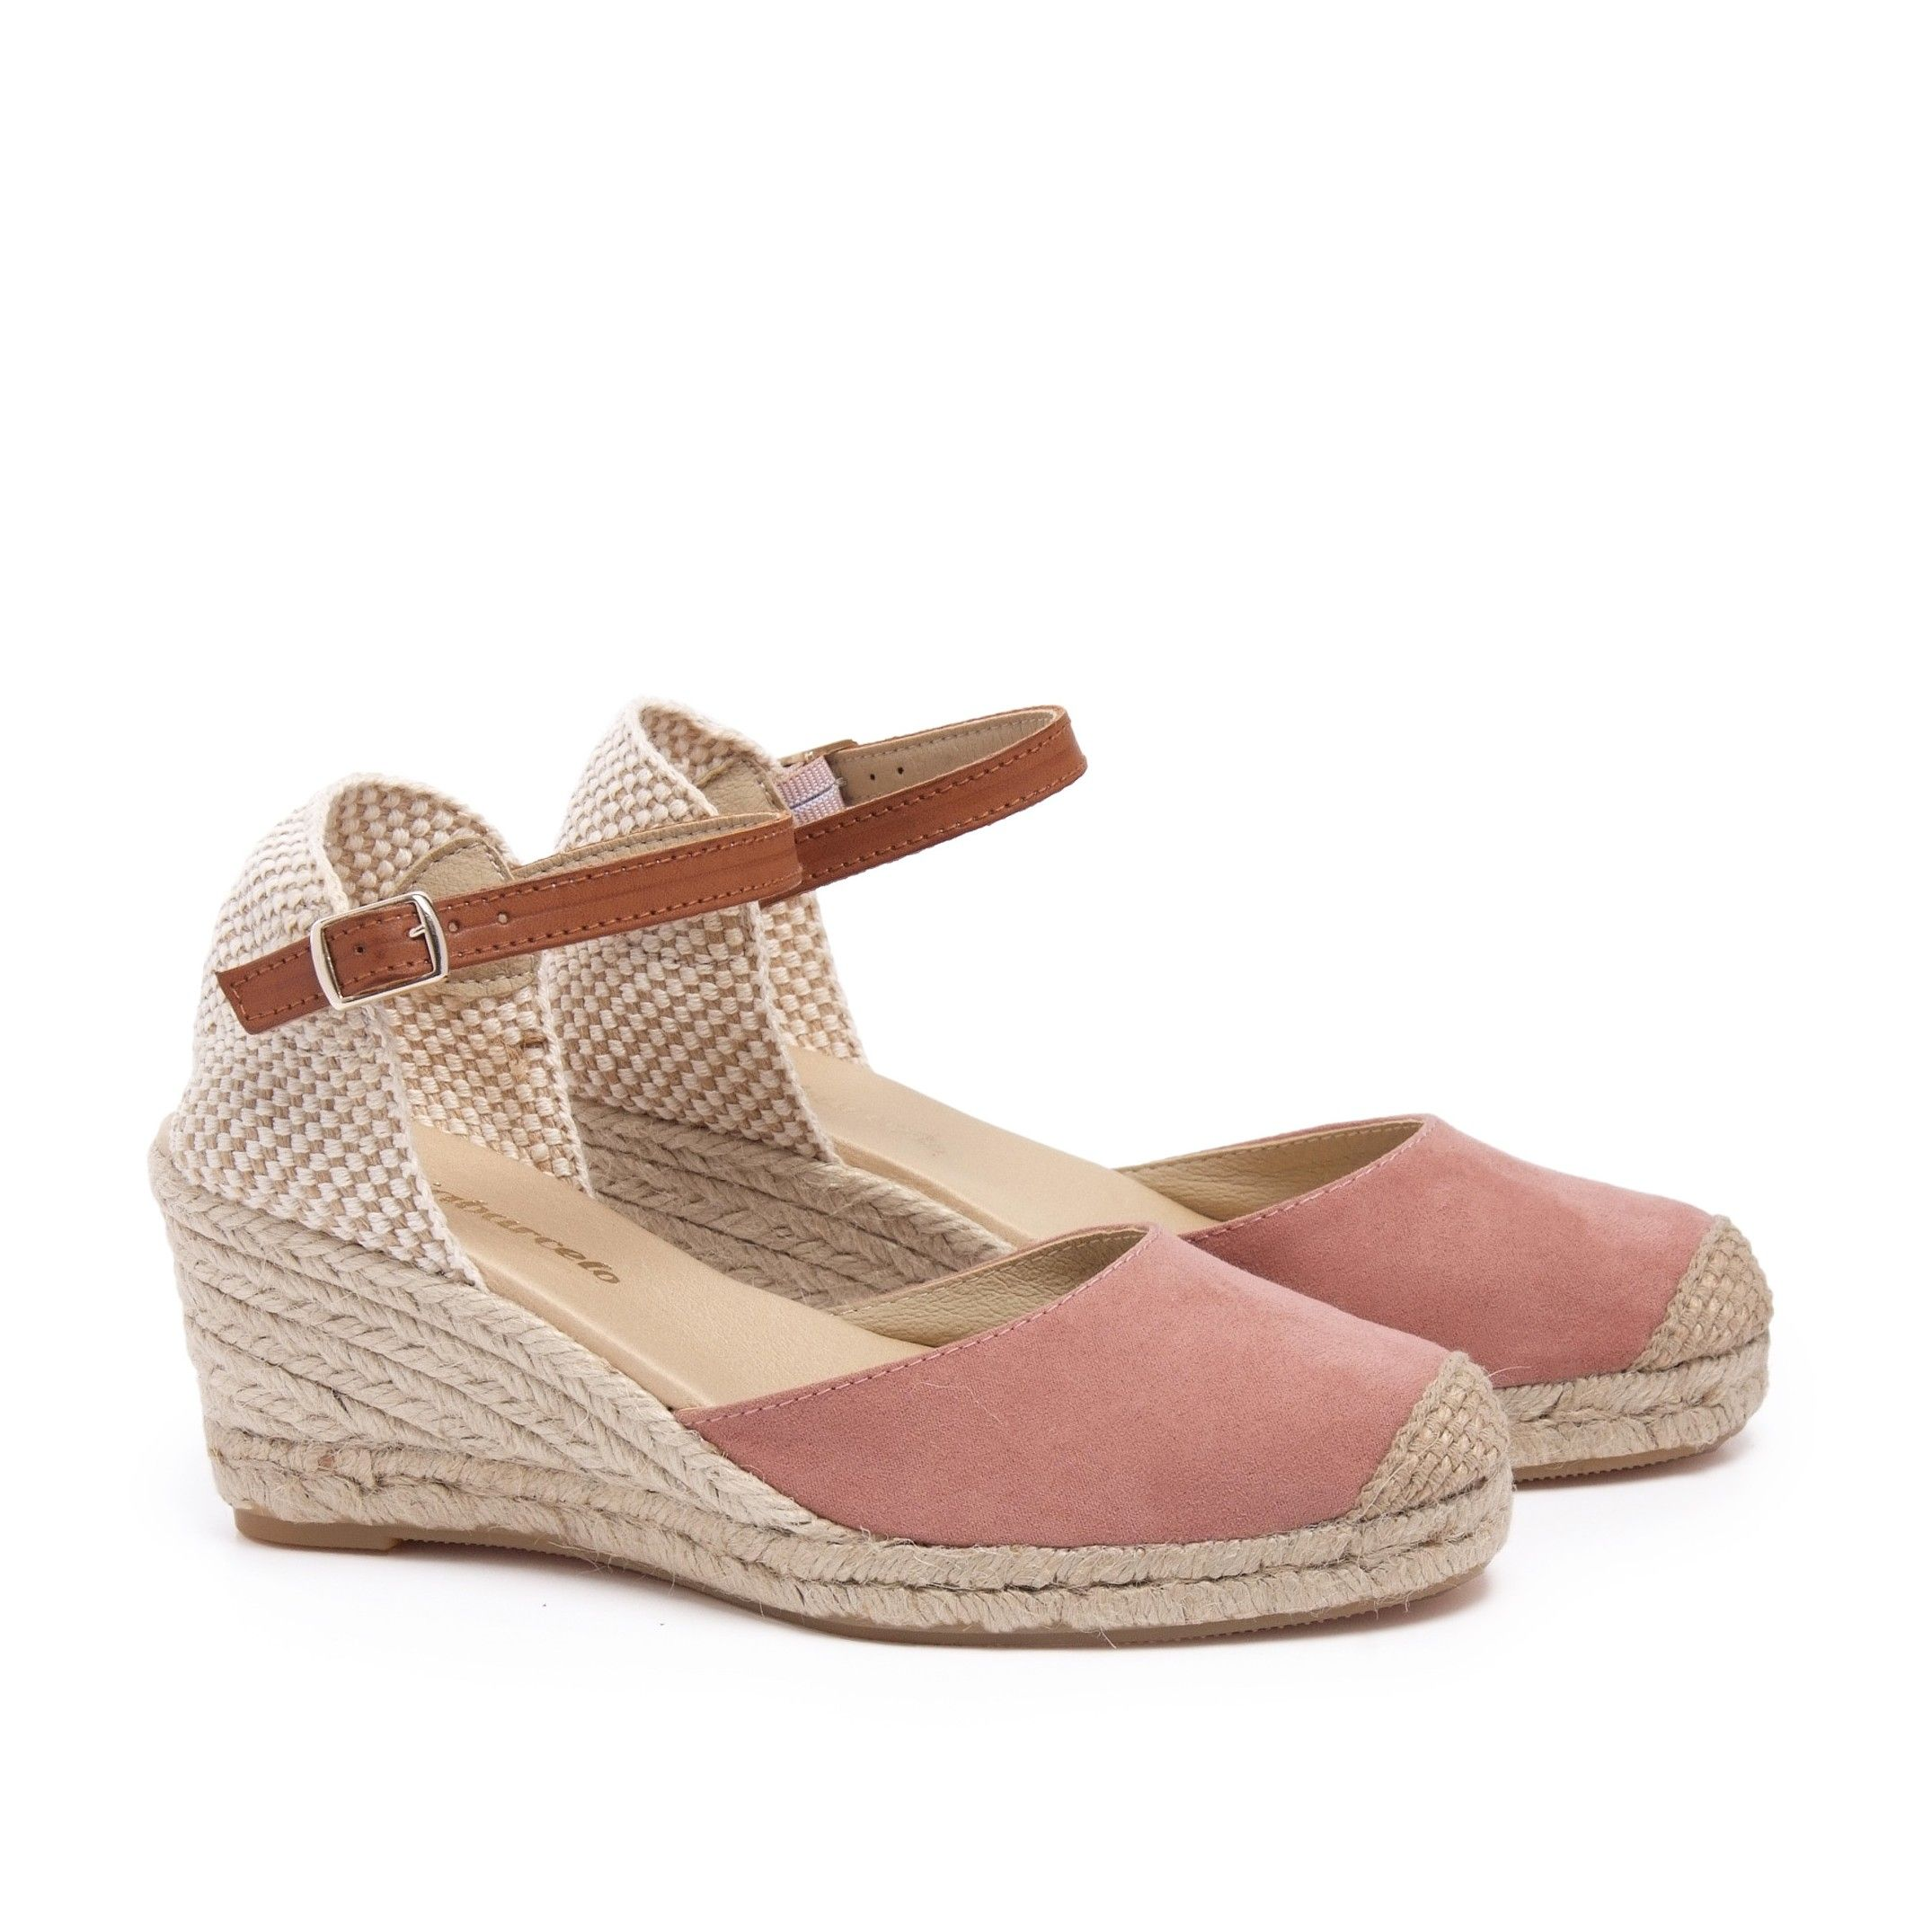 María Barceló Ankle Strap Summer Sandals in Pink